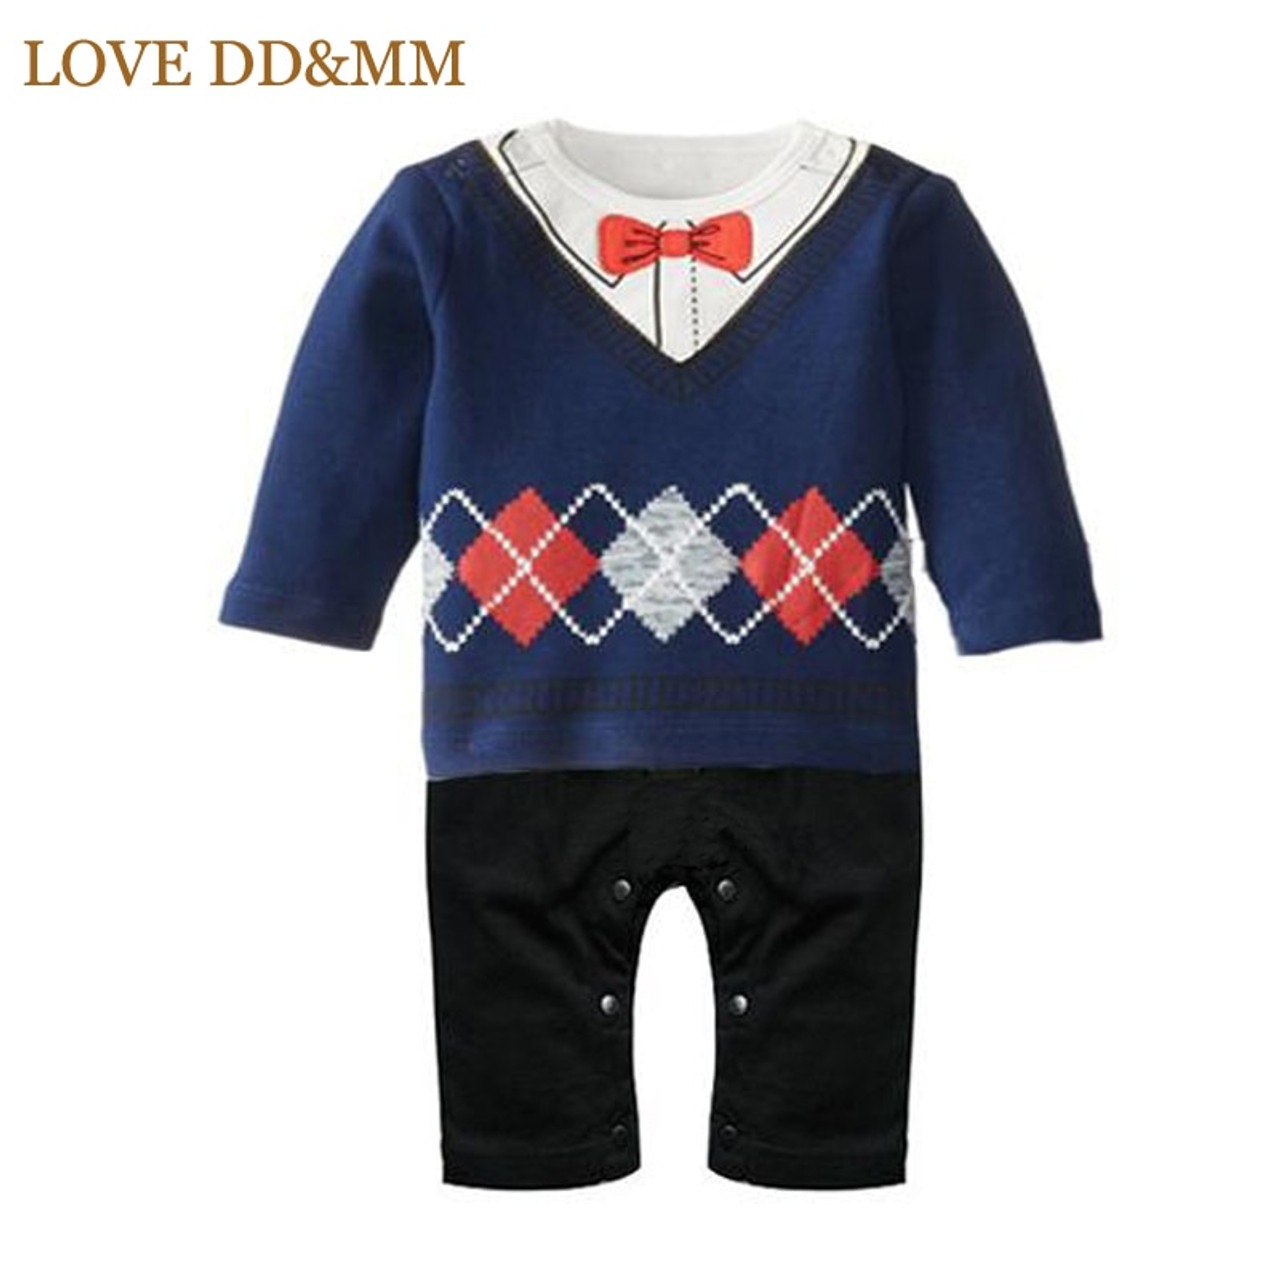 70ec4f630b ... LOVE DD amp MM Newborn Baby Rompers Clothing Baby Boys Clothes Tie  Gentleman Bow Leisure Infant ...